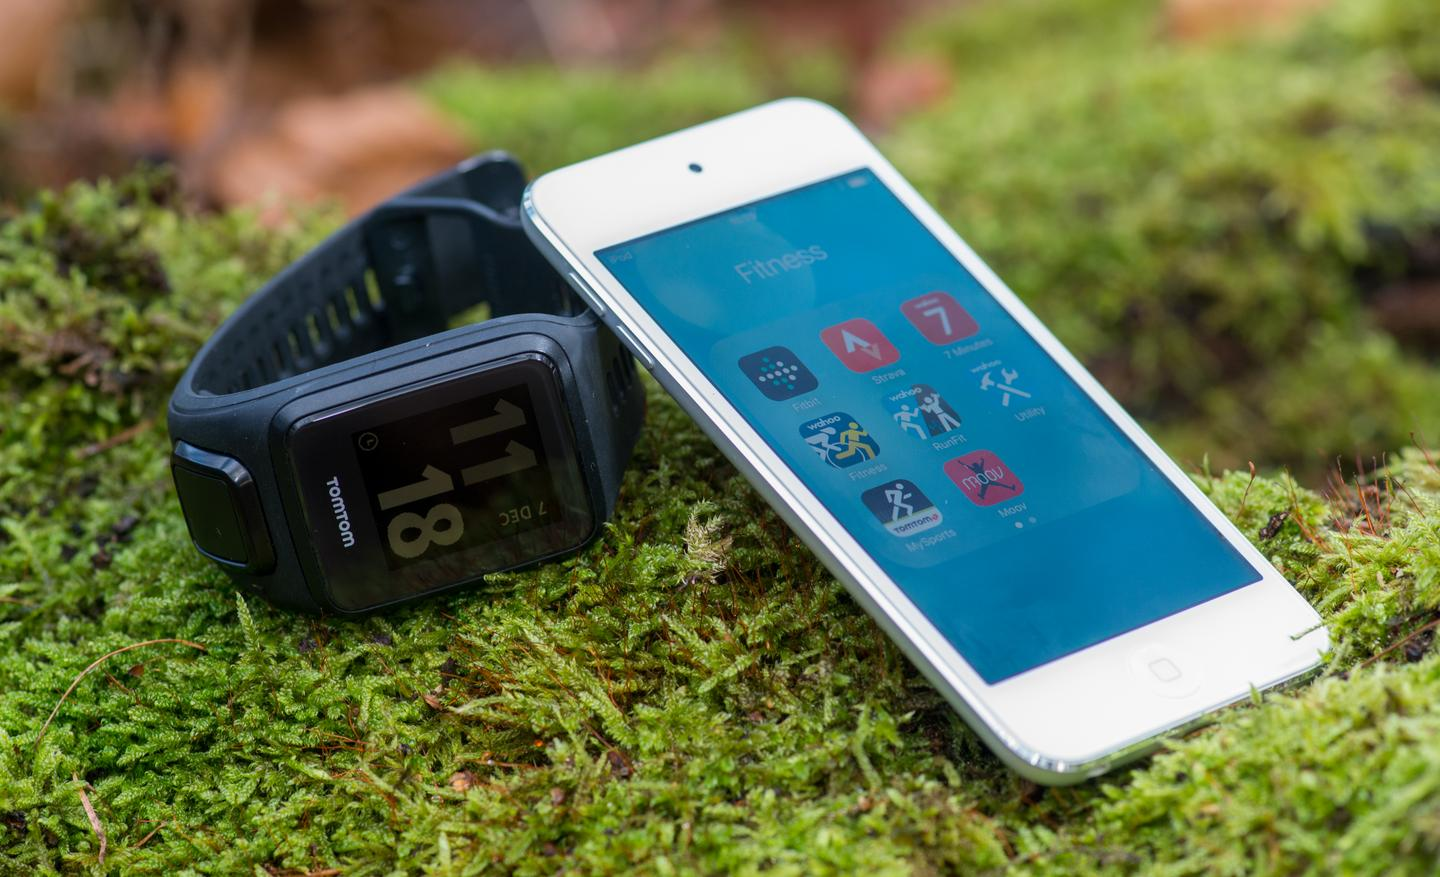 The TomTom Spark (Cardio + Music) might mean you can leave the phone (or MP3 player) at home